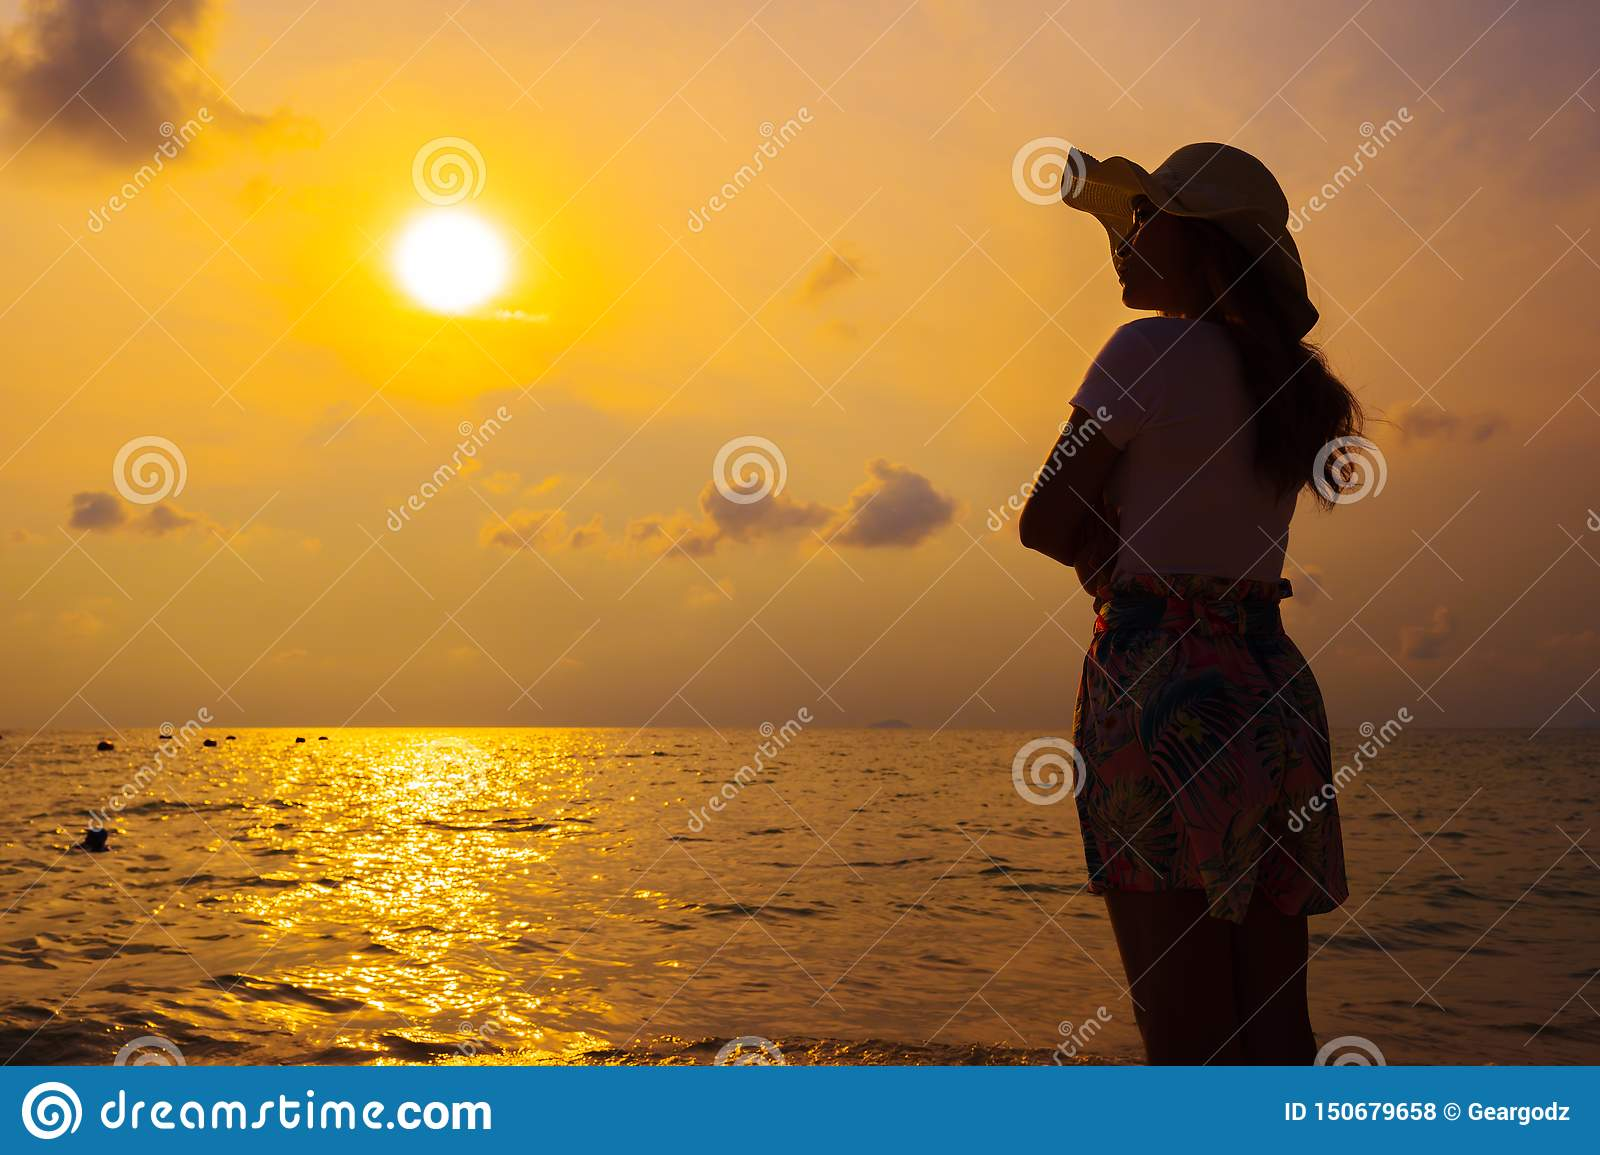 Woman wearing hat standing on sea beach at sunset